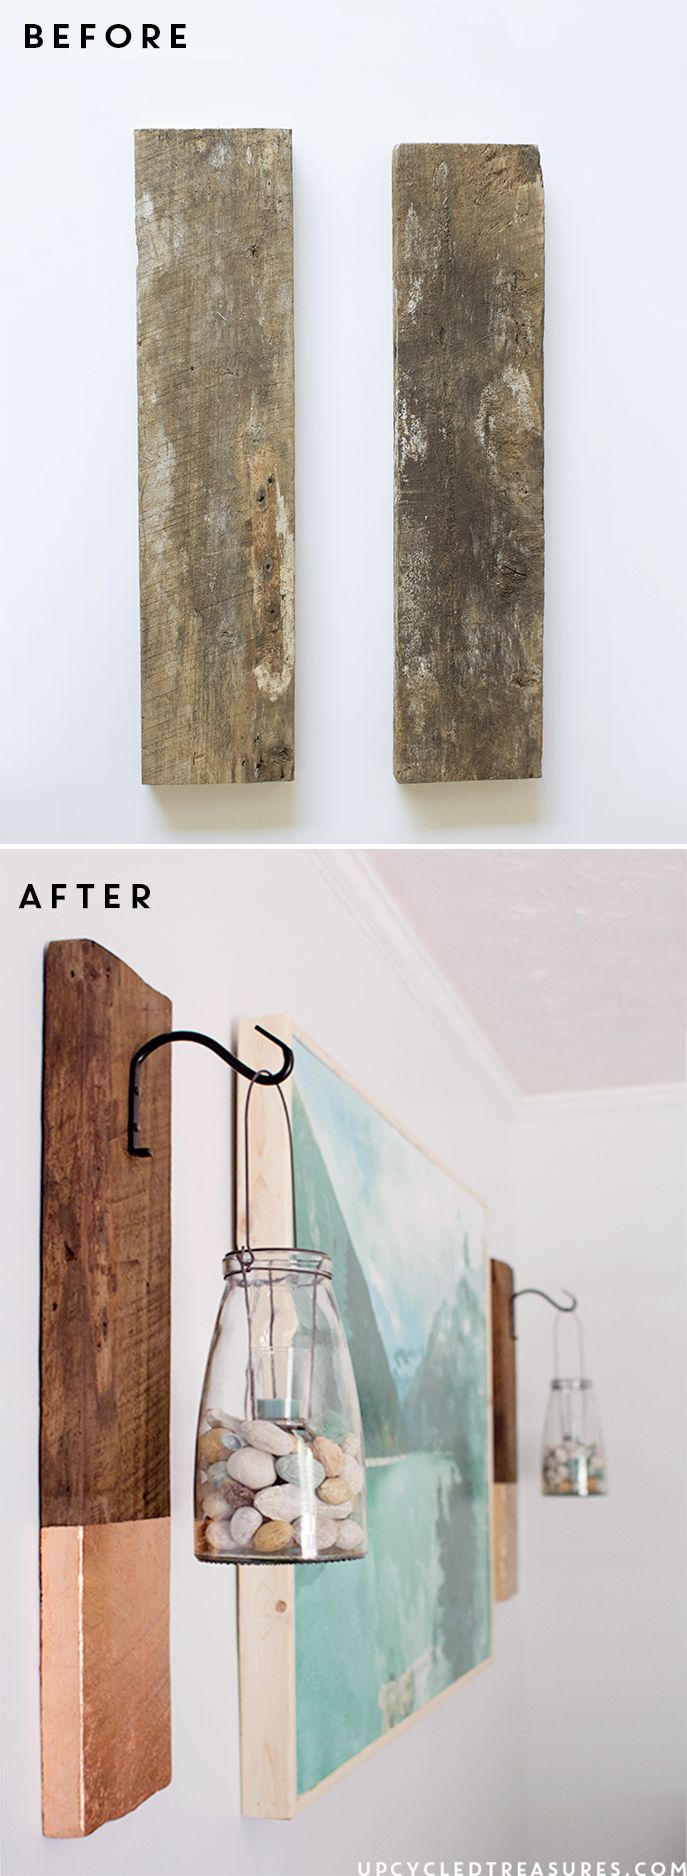 Bedroom wall decor ideas diy - How To Create A Modern Rustic Wall Hanging